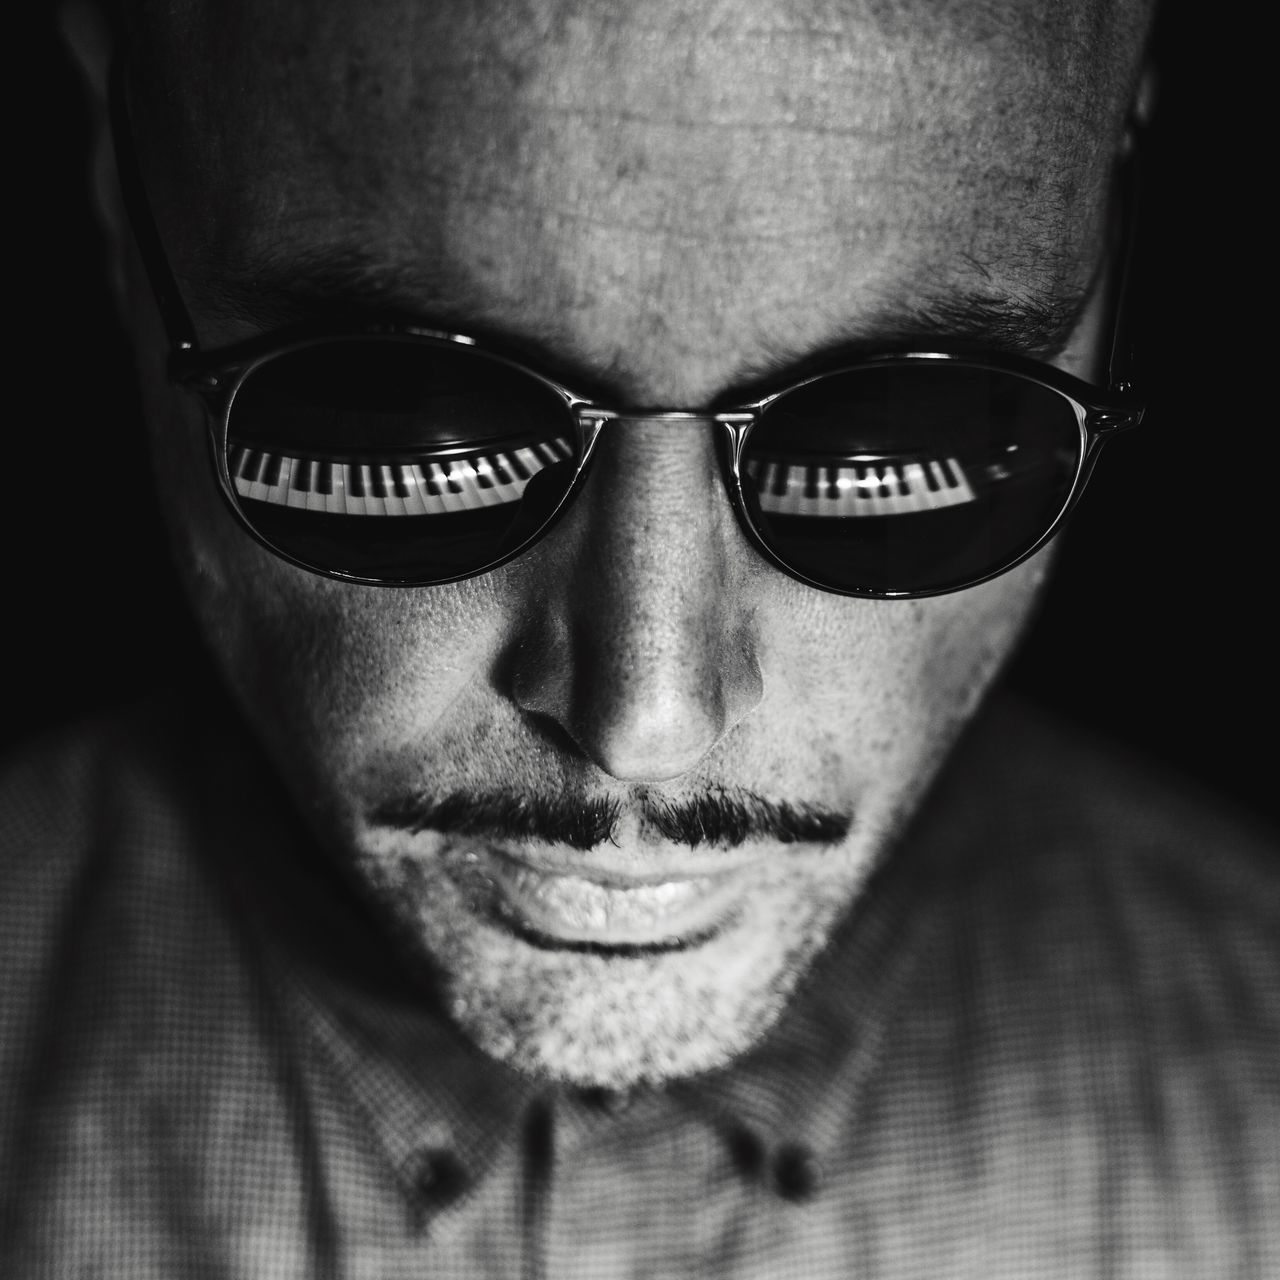 Piano Moments Piano Reflection Reflection_collection TakeoverMusic Blackandwhite Blackandwhite Photography Black And White EyeEm Best Shots Sunglasses Glasses Portrait Portraits